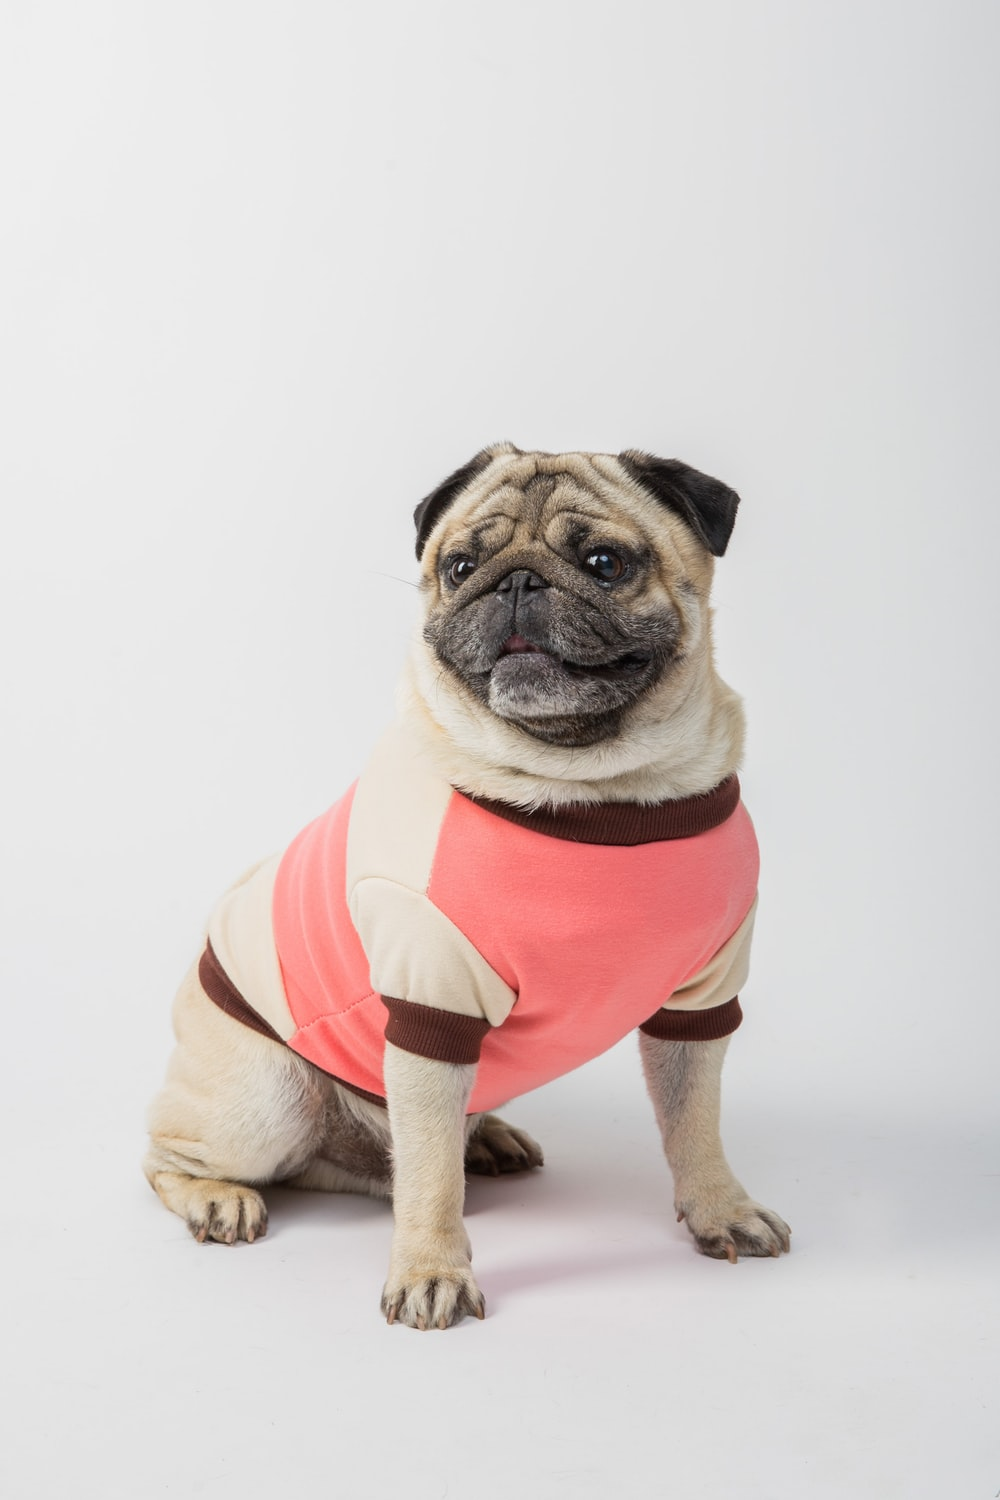 fawn pug wearing red and white striped shirt